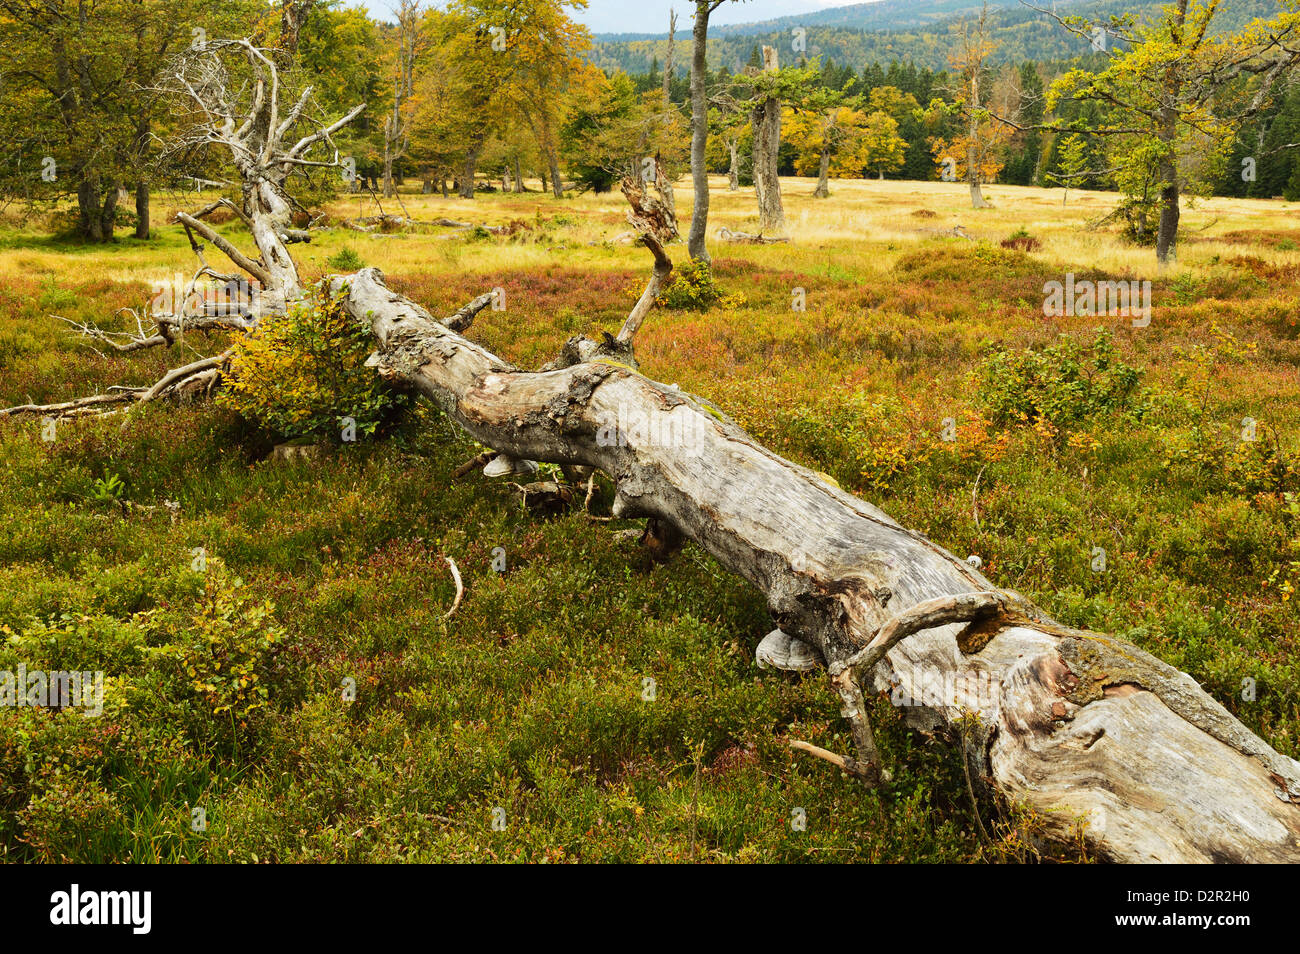 Pature with autumn colors, Bavarian Forest National Park, Bavarian Forest, Bavaria, Germany, Europe Stock Photo